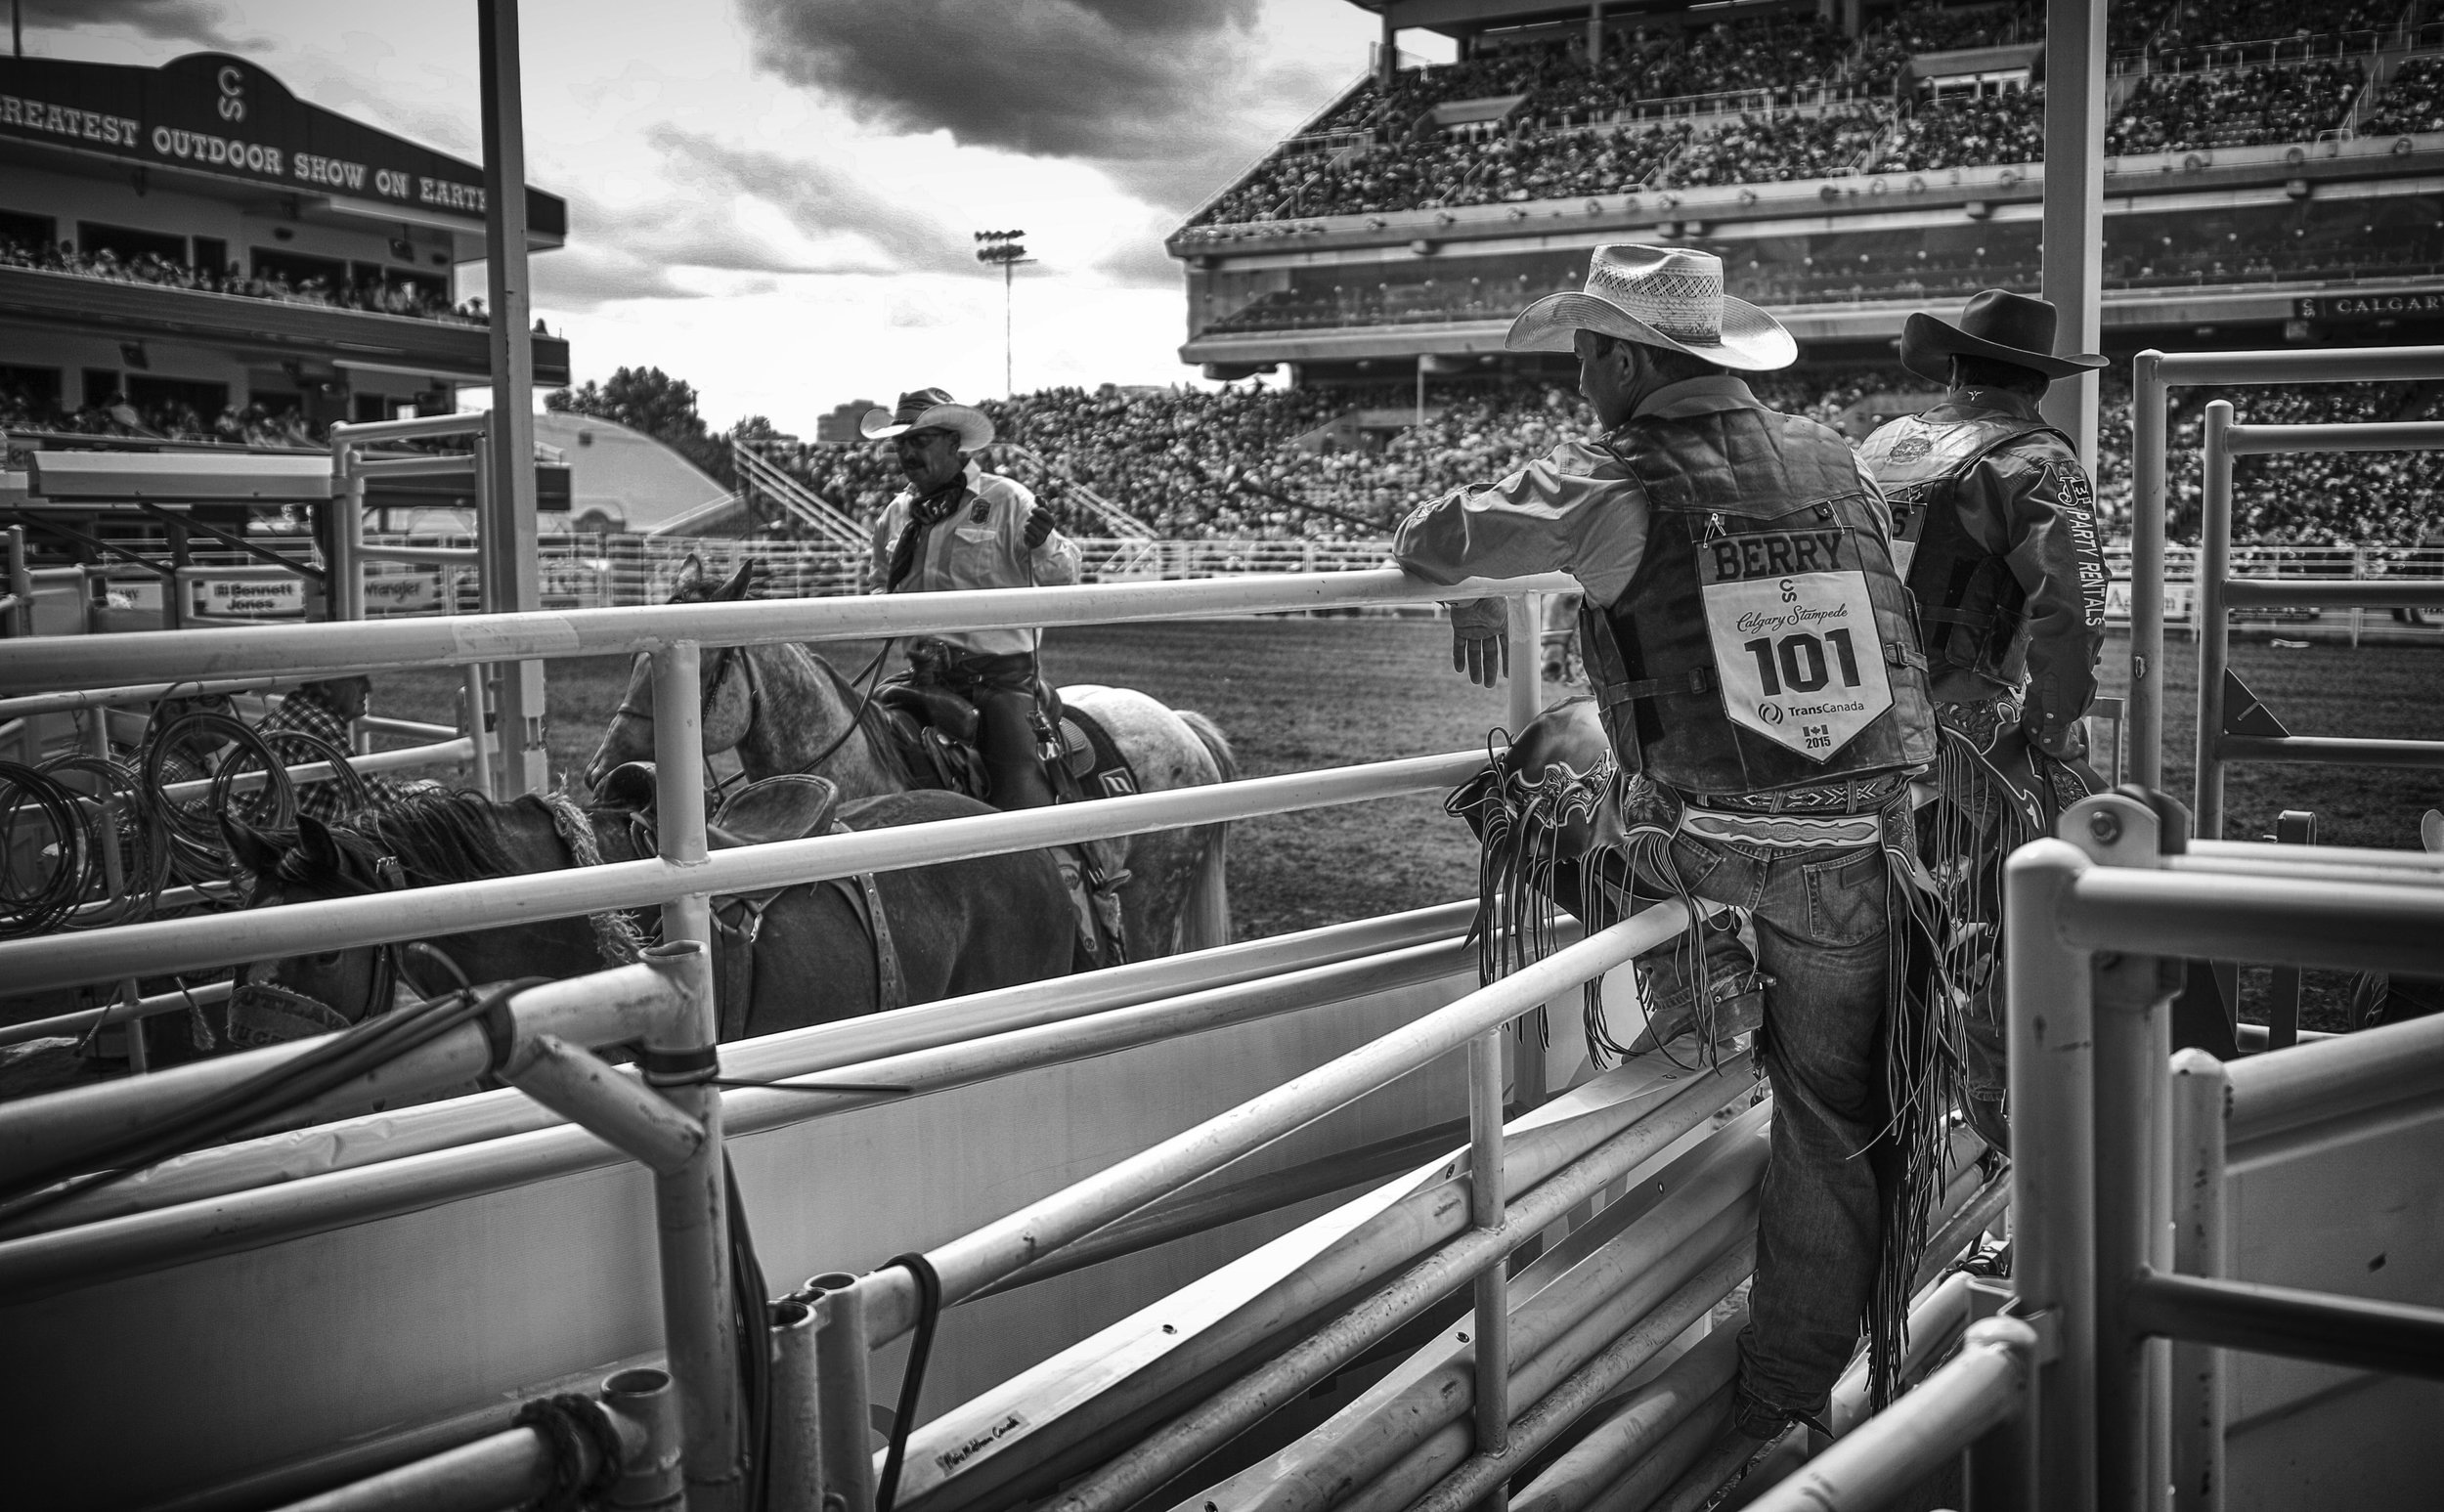 Saddle Bronc riders